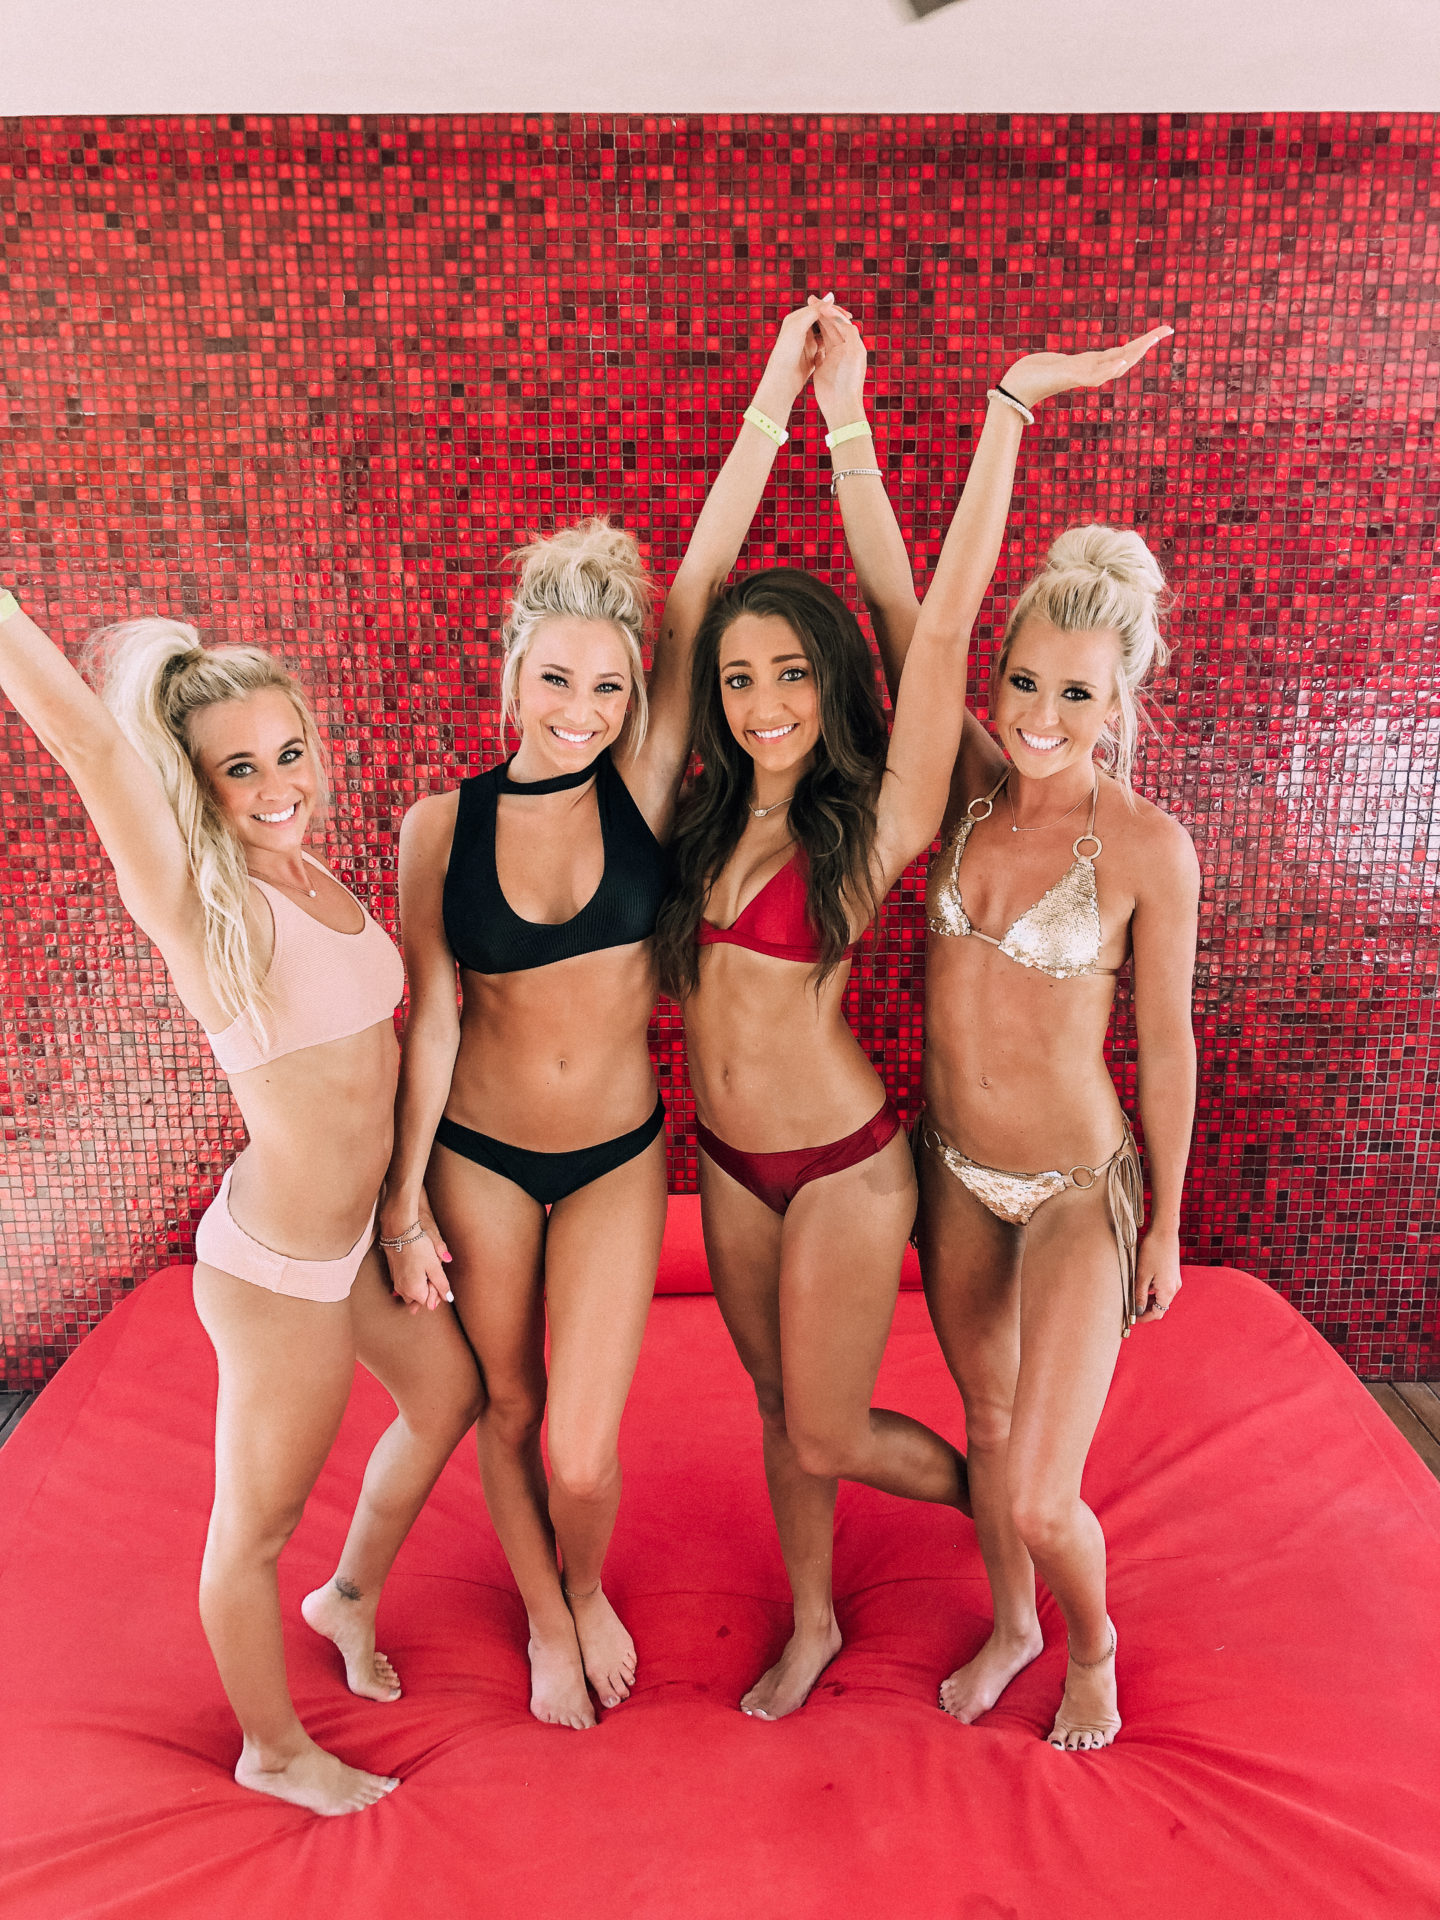 Las Vegas Swimsuit Models - Dallas Fashion Model, Fashion & Lifestyle Blogger - Peyton Mabry